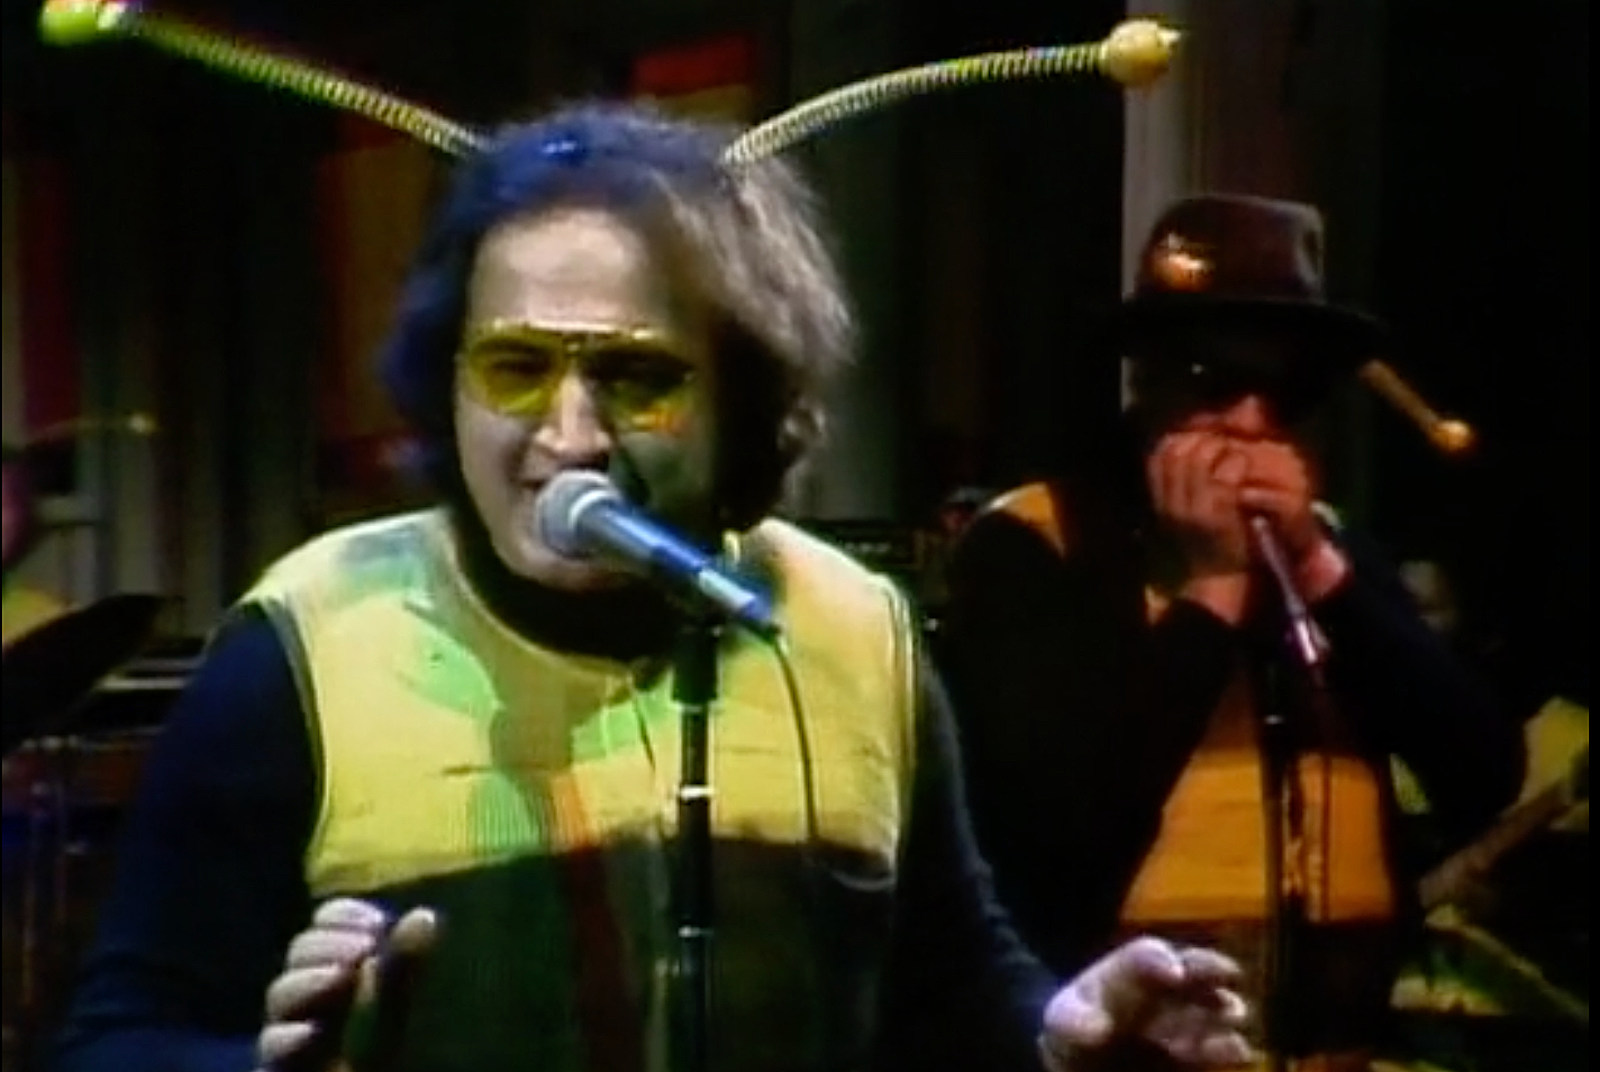 Why the Blues Brothers Made Their 'SNL' Debut in Bee Costumes